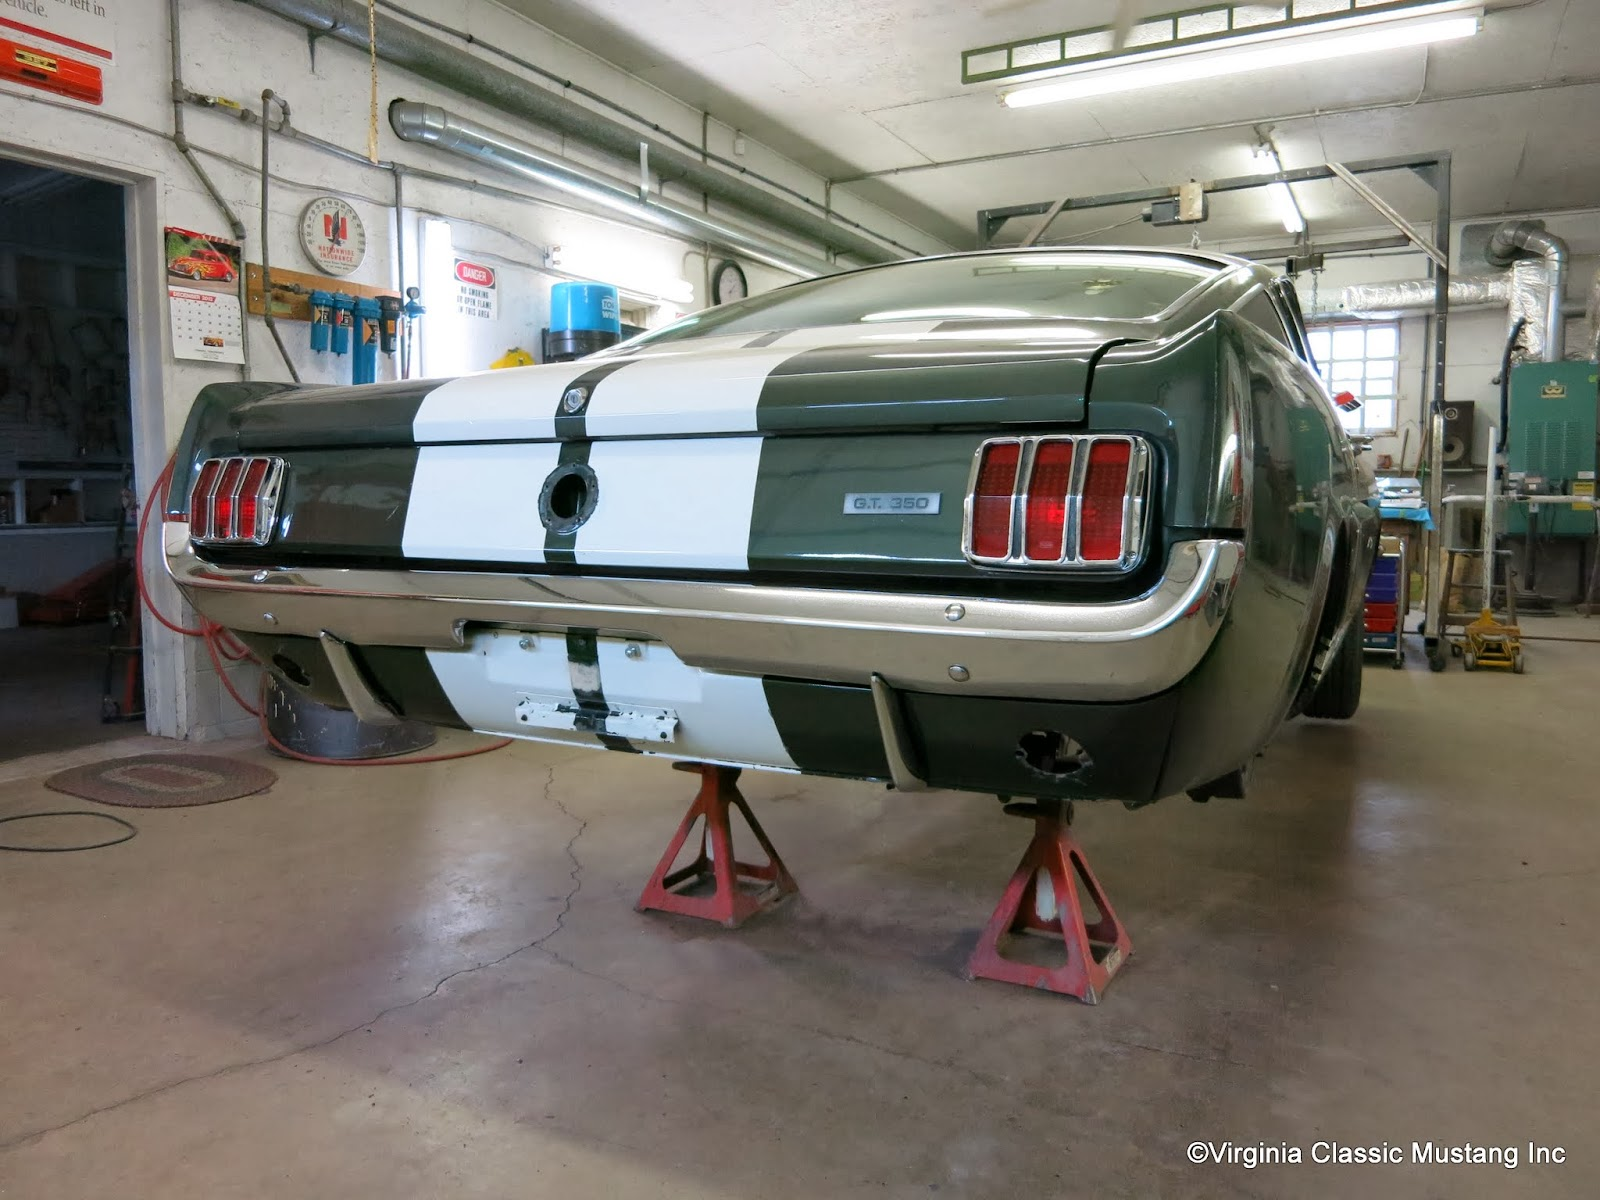 65 Mustang Fog Light Wiring Diagram | Wiring Liry on